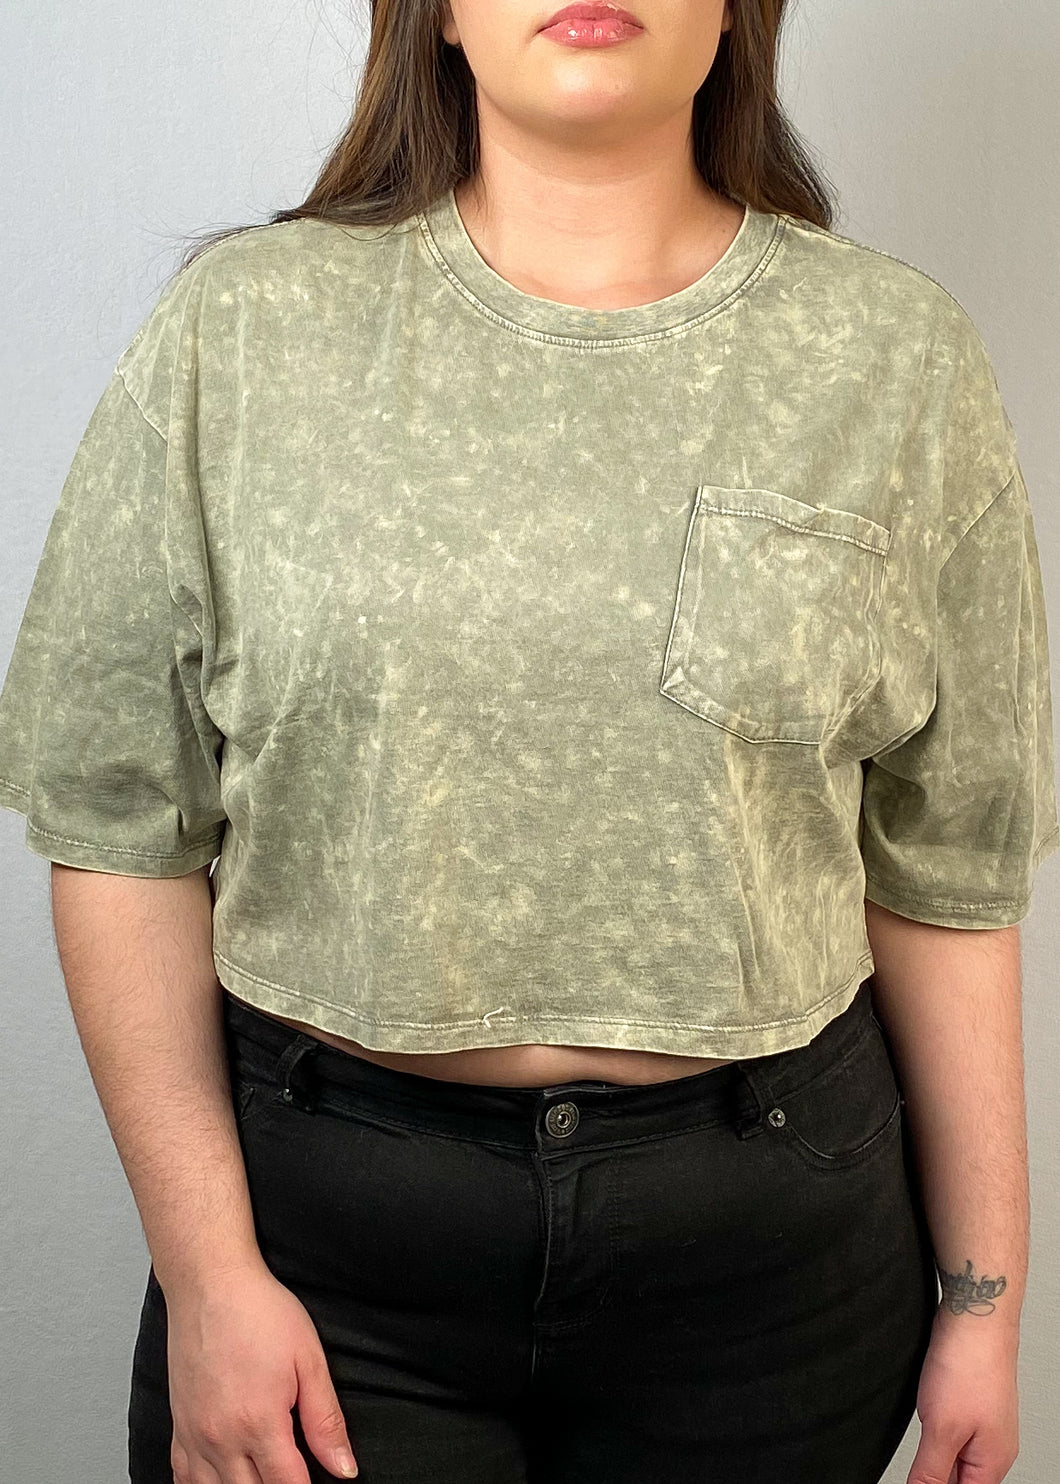 Sage Crop Top - In Your Space Boutique